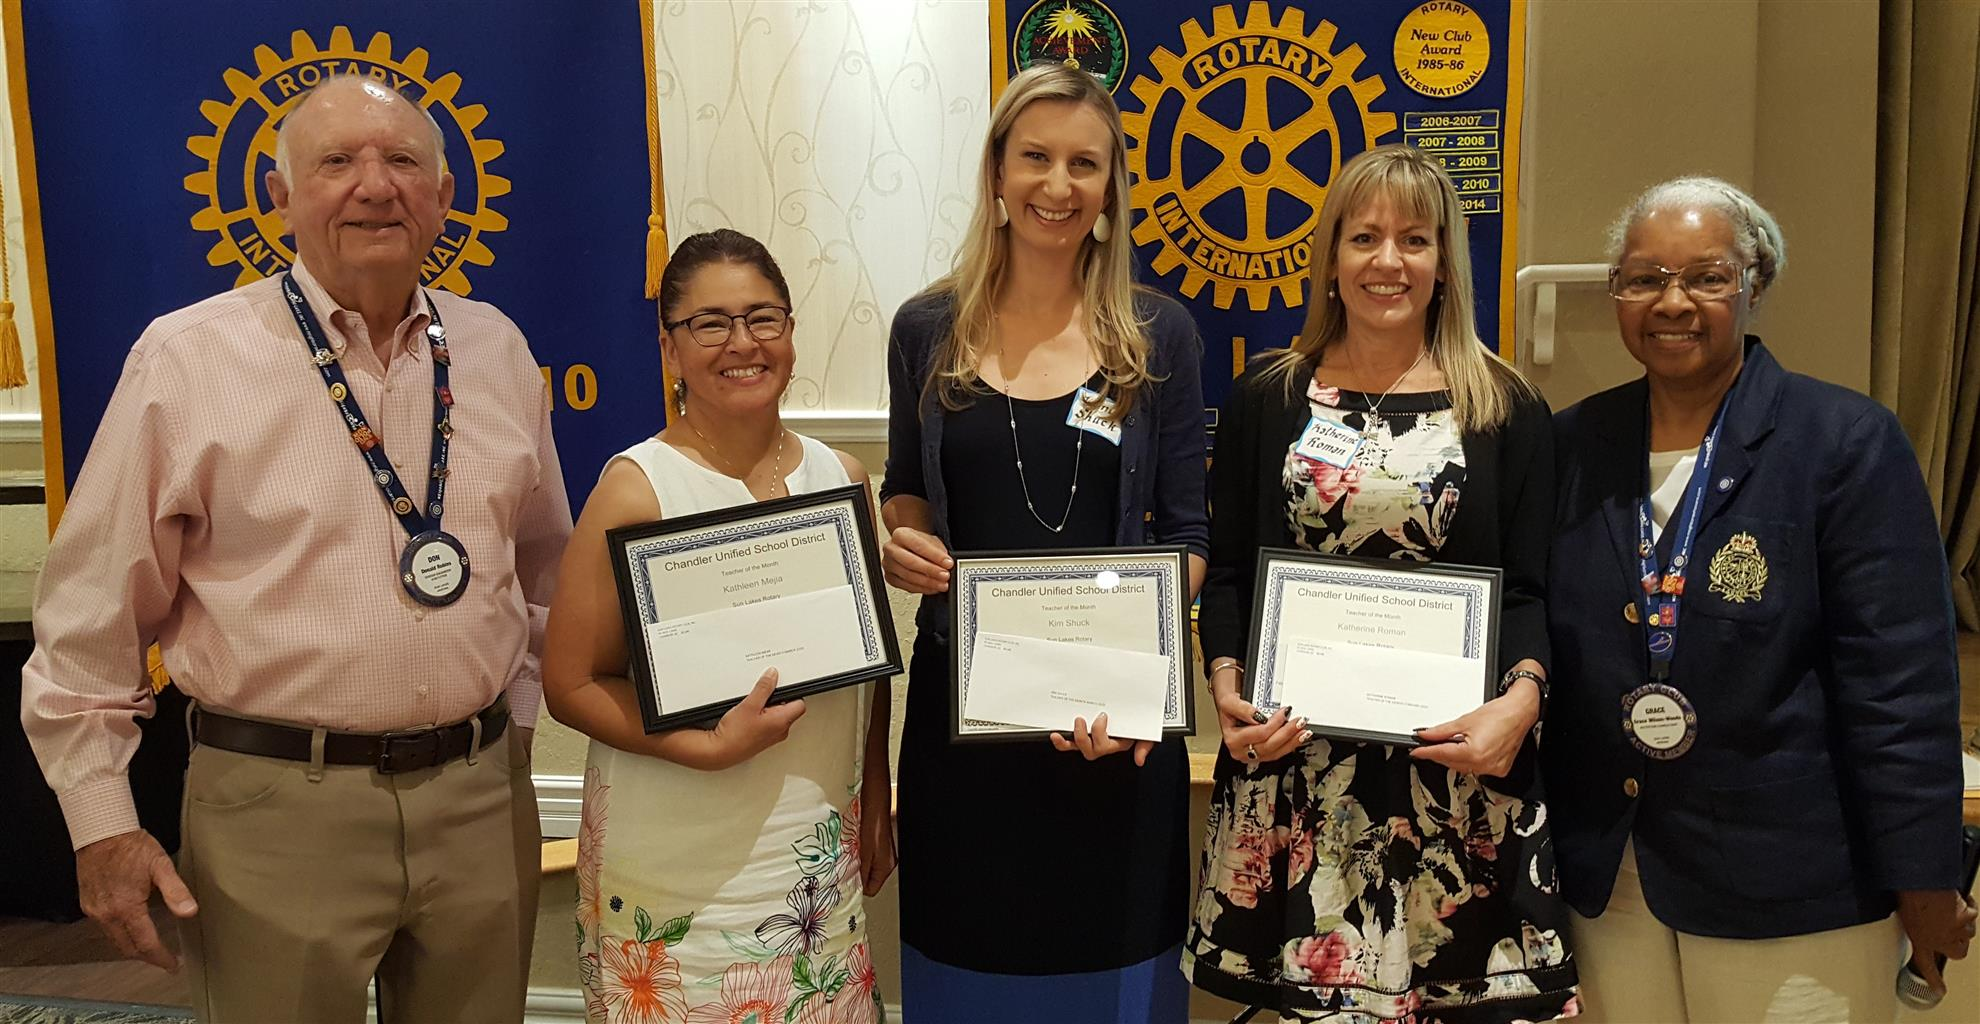 Sun Lakes Rotary Teacher of the Month